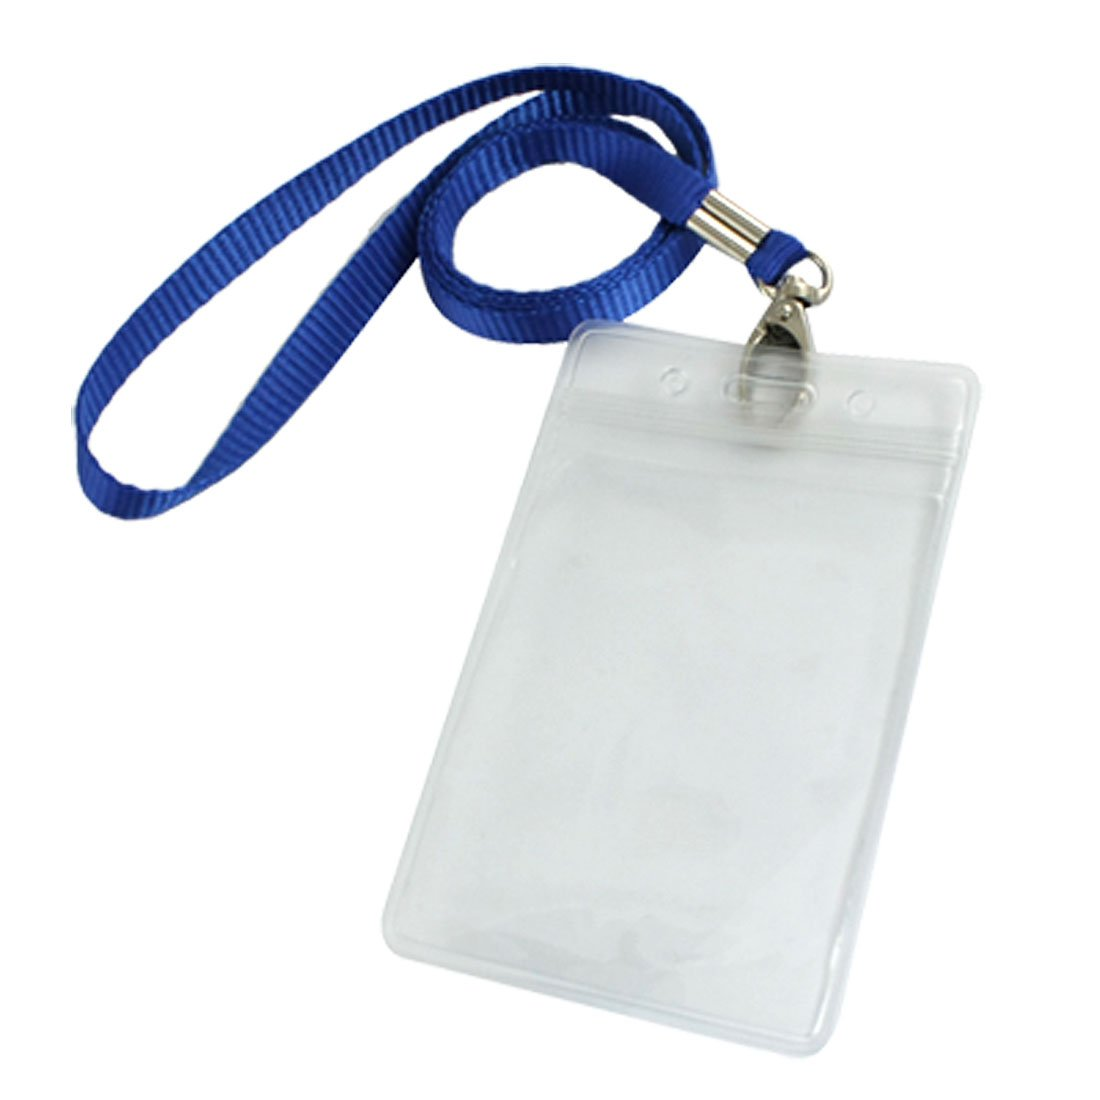 new and hot vertical clear plastic id badge card holder w neck strap 2 pcs in badge holder accessories from office school supplies on aliexpresscom - Plastic Id Card Holder